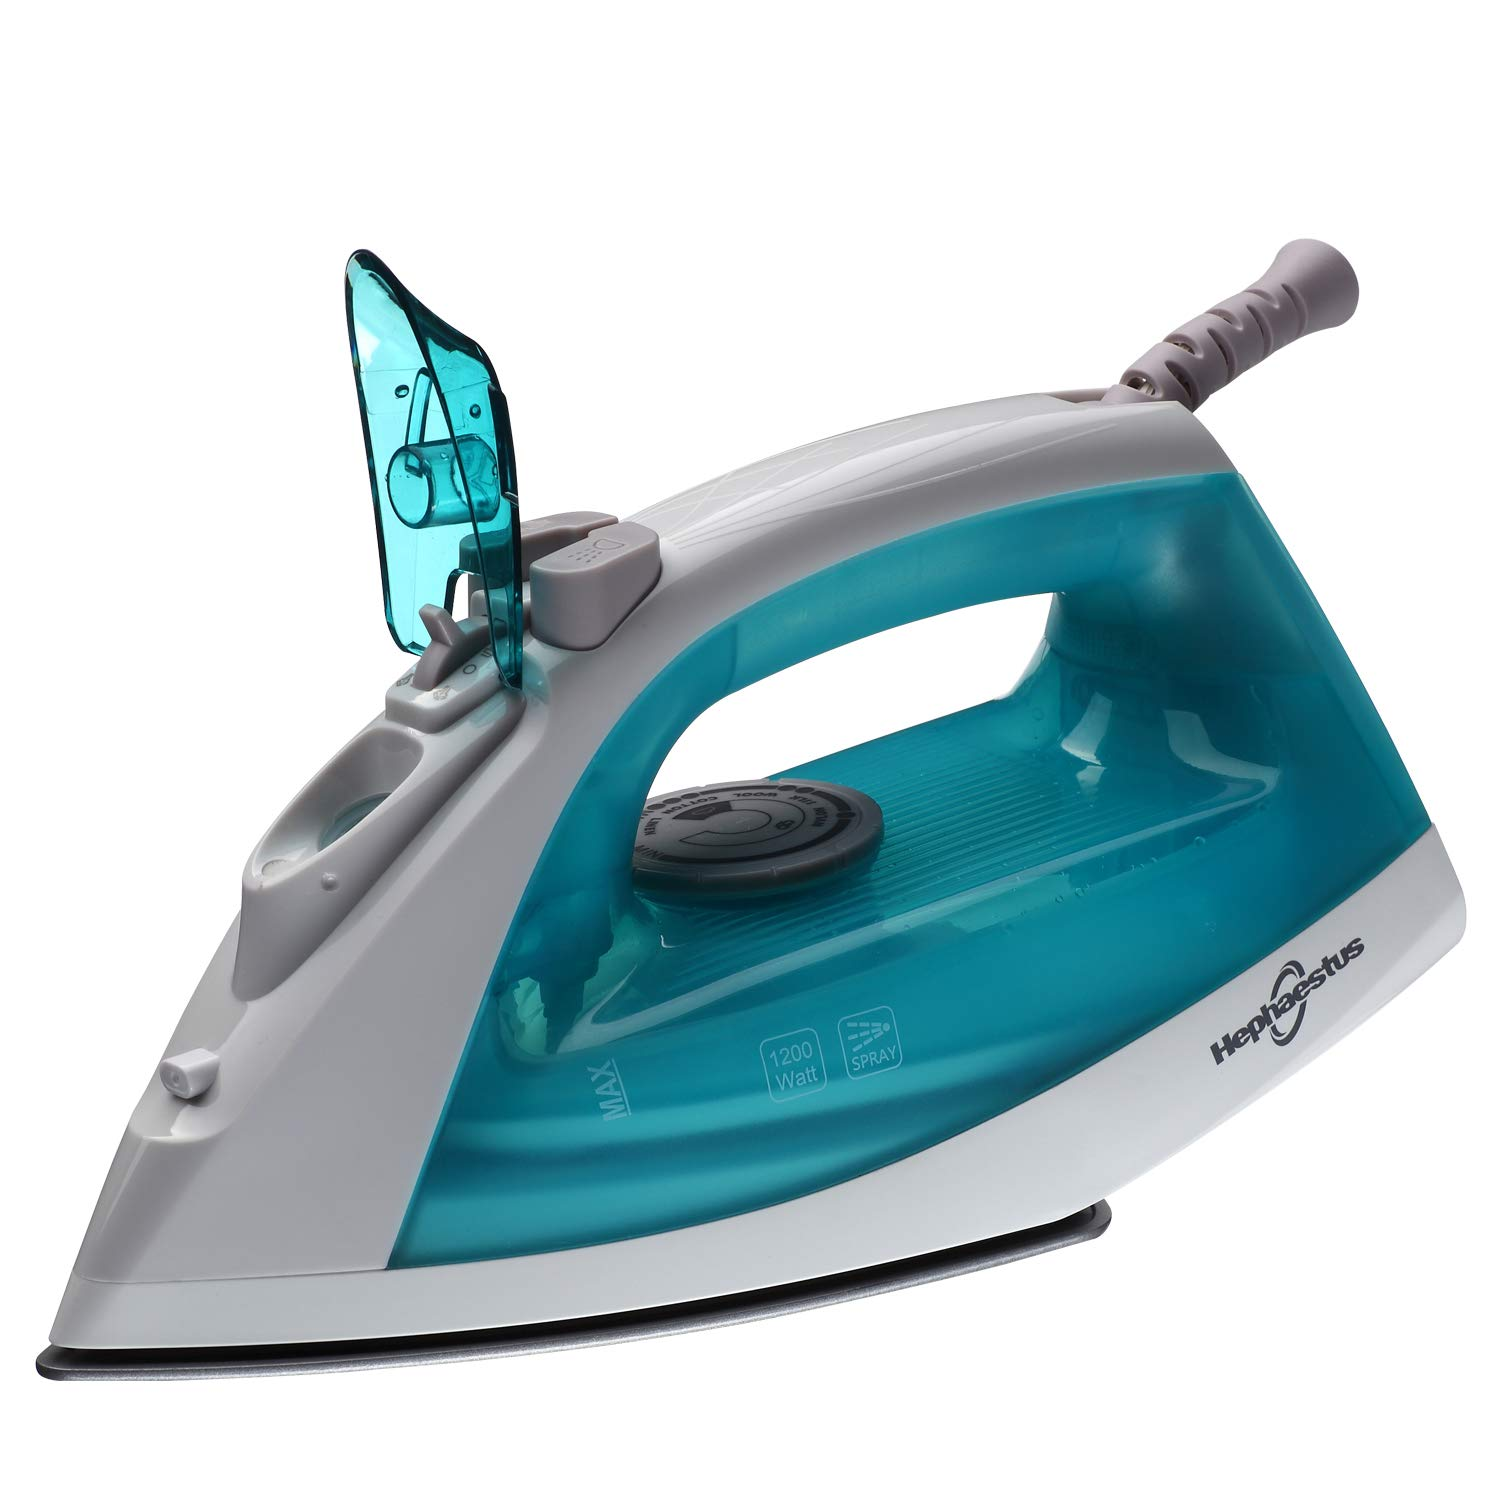 Steam Iron 1200W Coated Stainless Steel Soleplate Variable Steam Button 8 Feet and 360-degree Swivel Cord